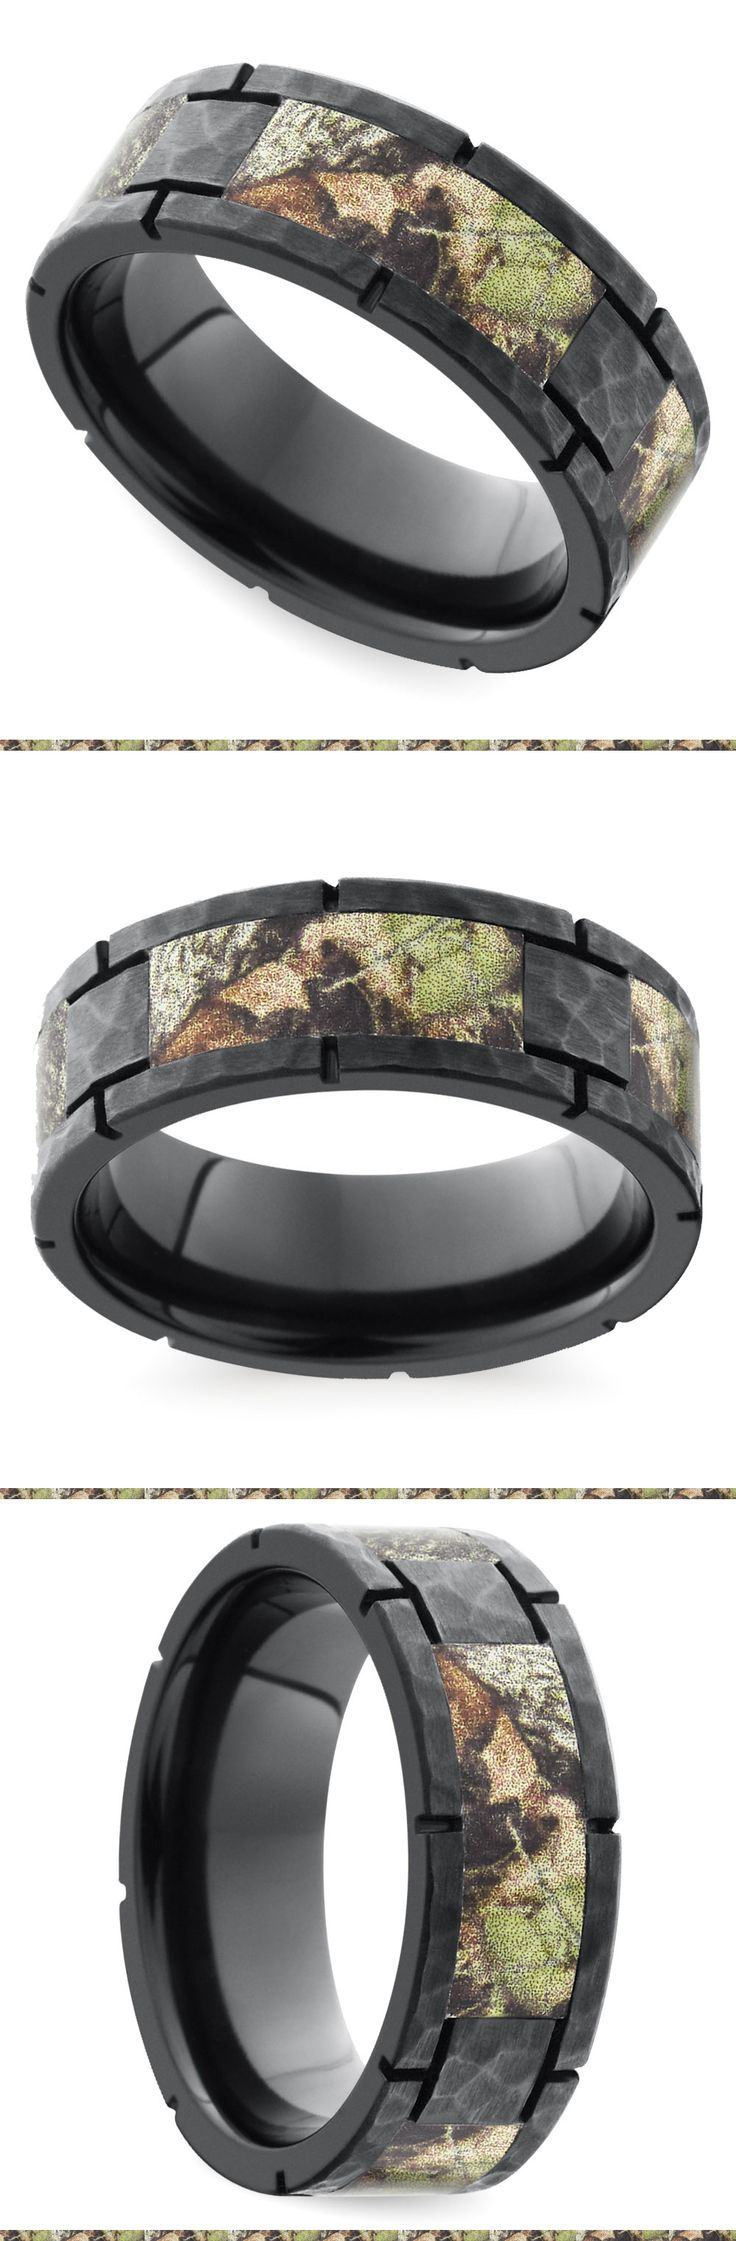 This strong design features segmented Mossy Oak camouflage inlays on an 8 mm zirconium band with hammered finish. Proudly made in the USA and comfort fit.